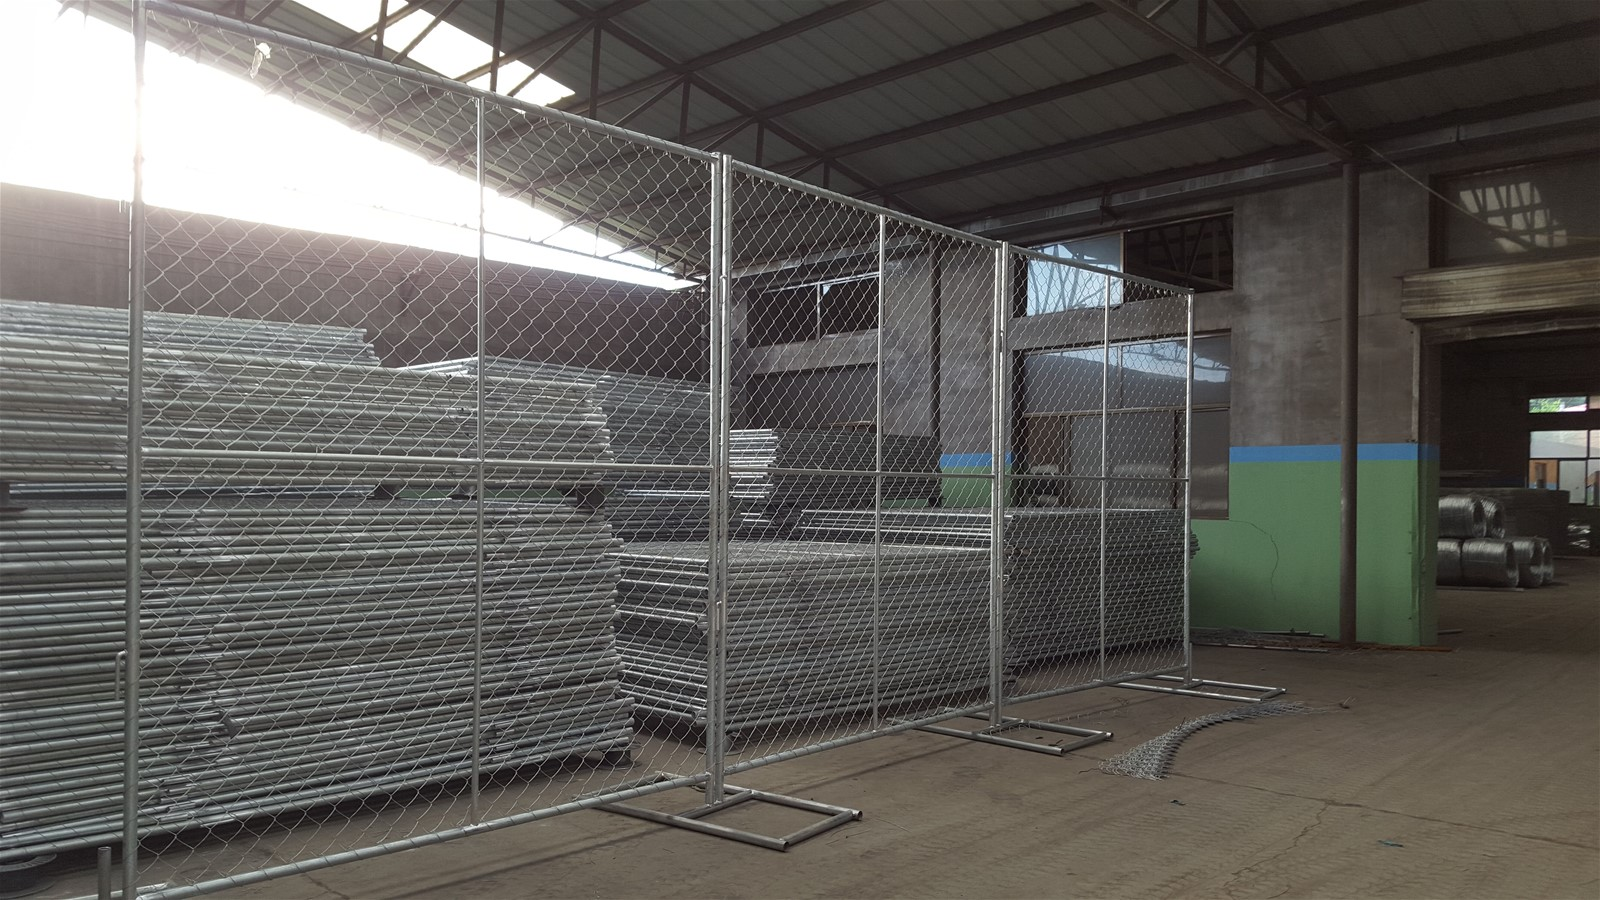 6x12ft Galvanized Temporary Industrial Security Chain-Link Fence ...